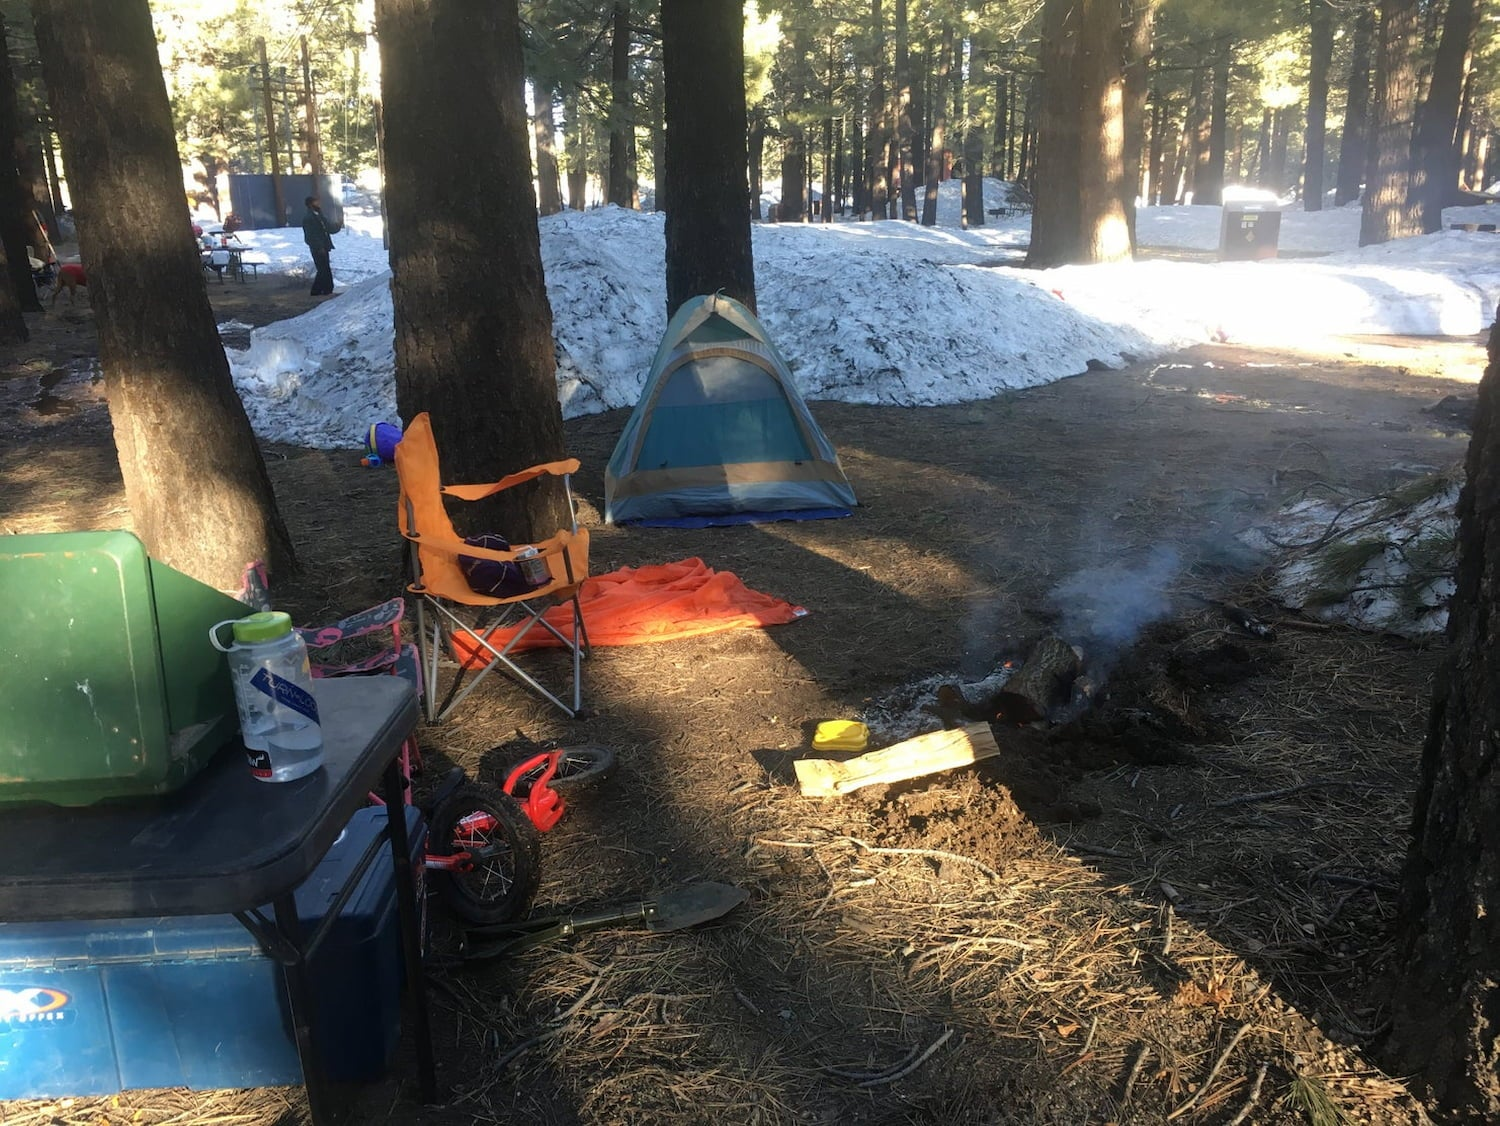 camp chairs and tent set up at campground near snow patches